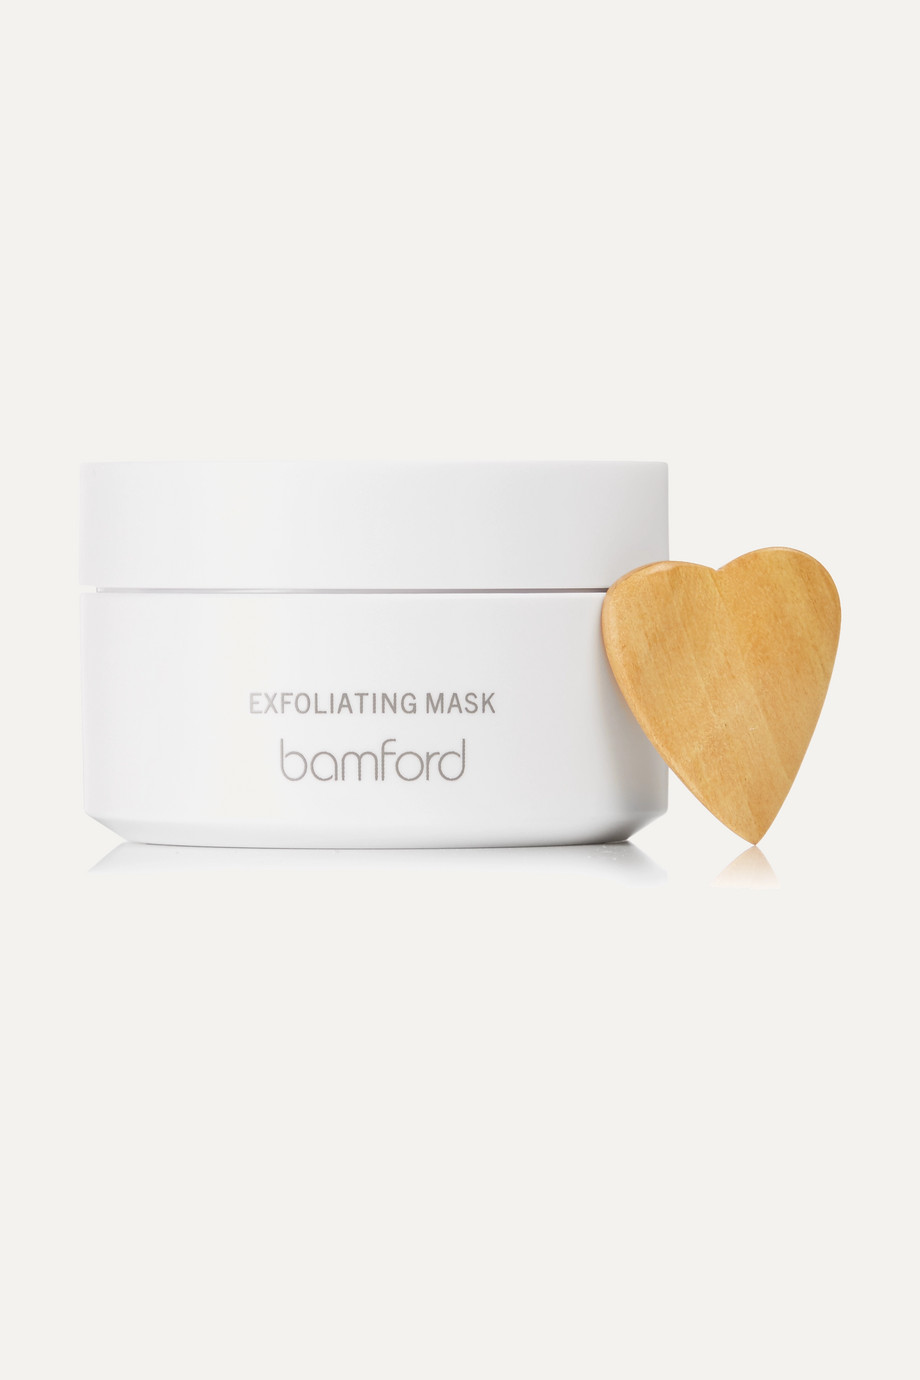 Bamford Exfoliating Mask, 45ml